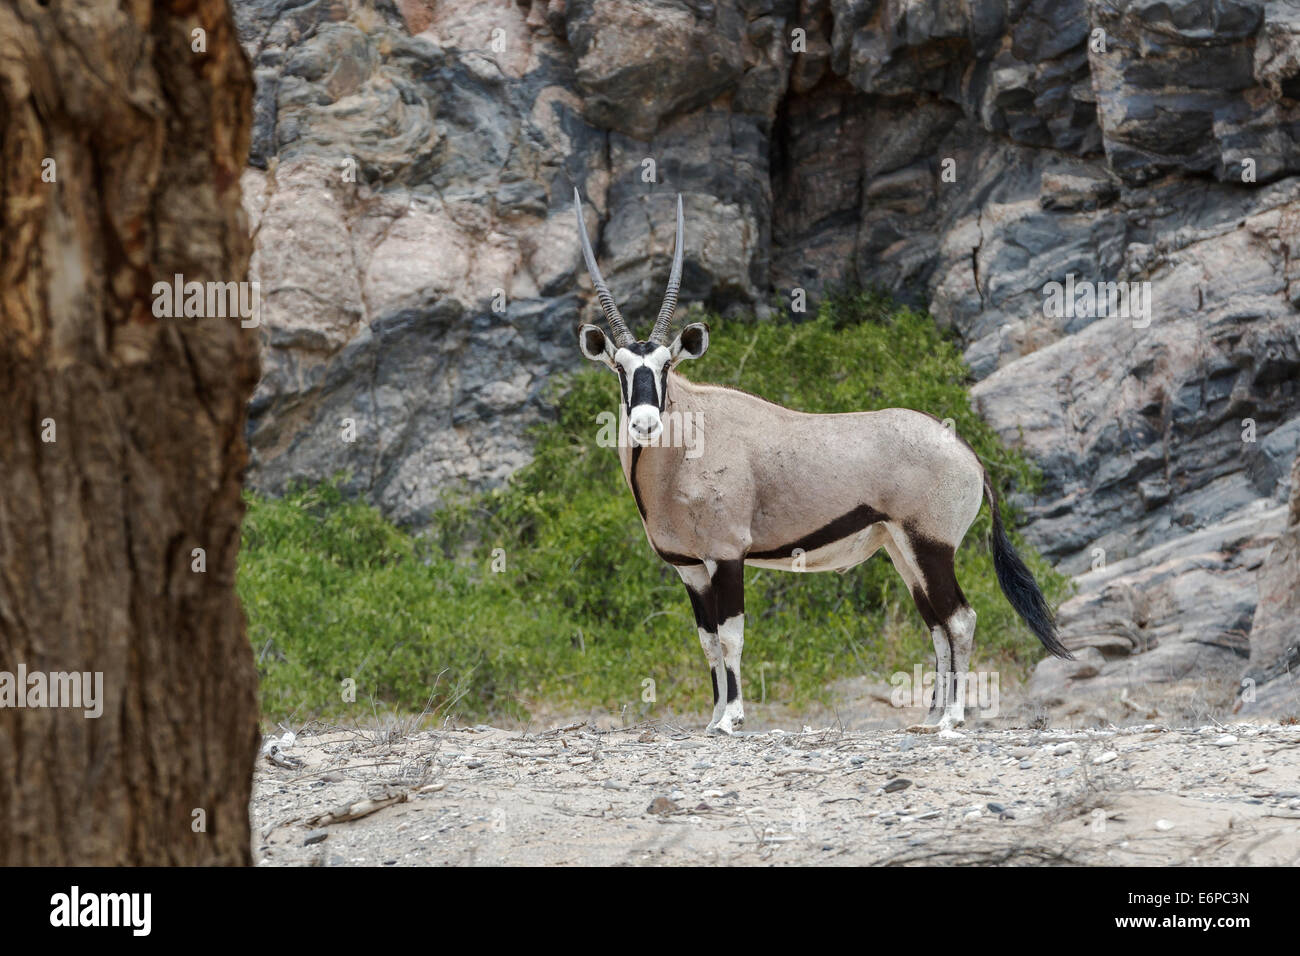 Oryx (Artiodactyla) adult standing, full body length, side view, face to camera, big antlers, Hoanib riverbed, Namibia, - Stock Image